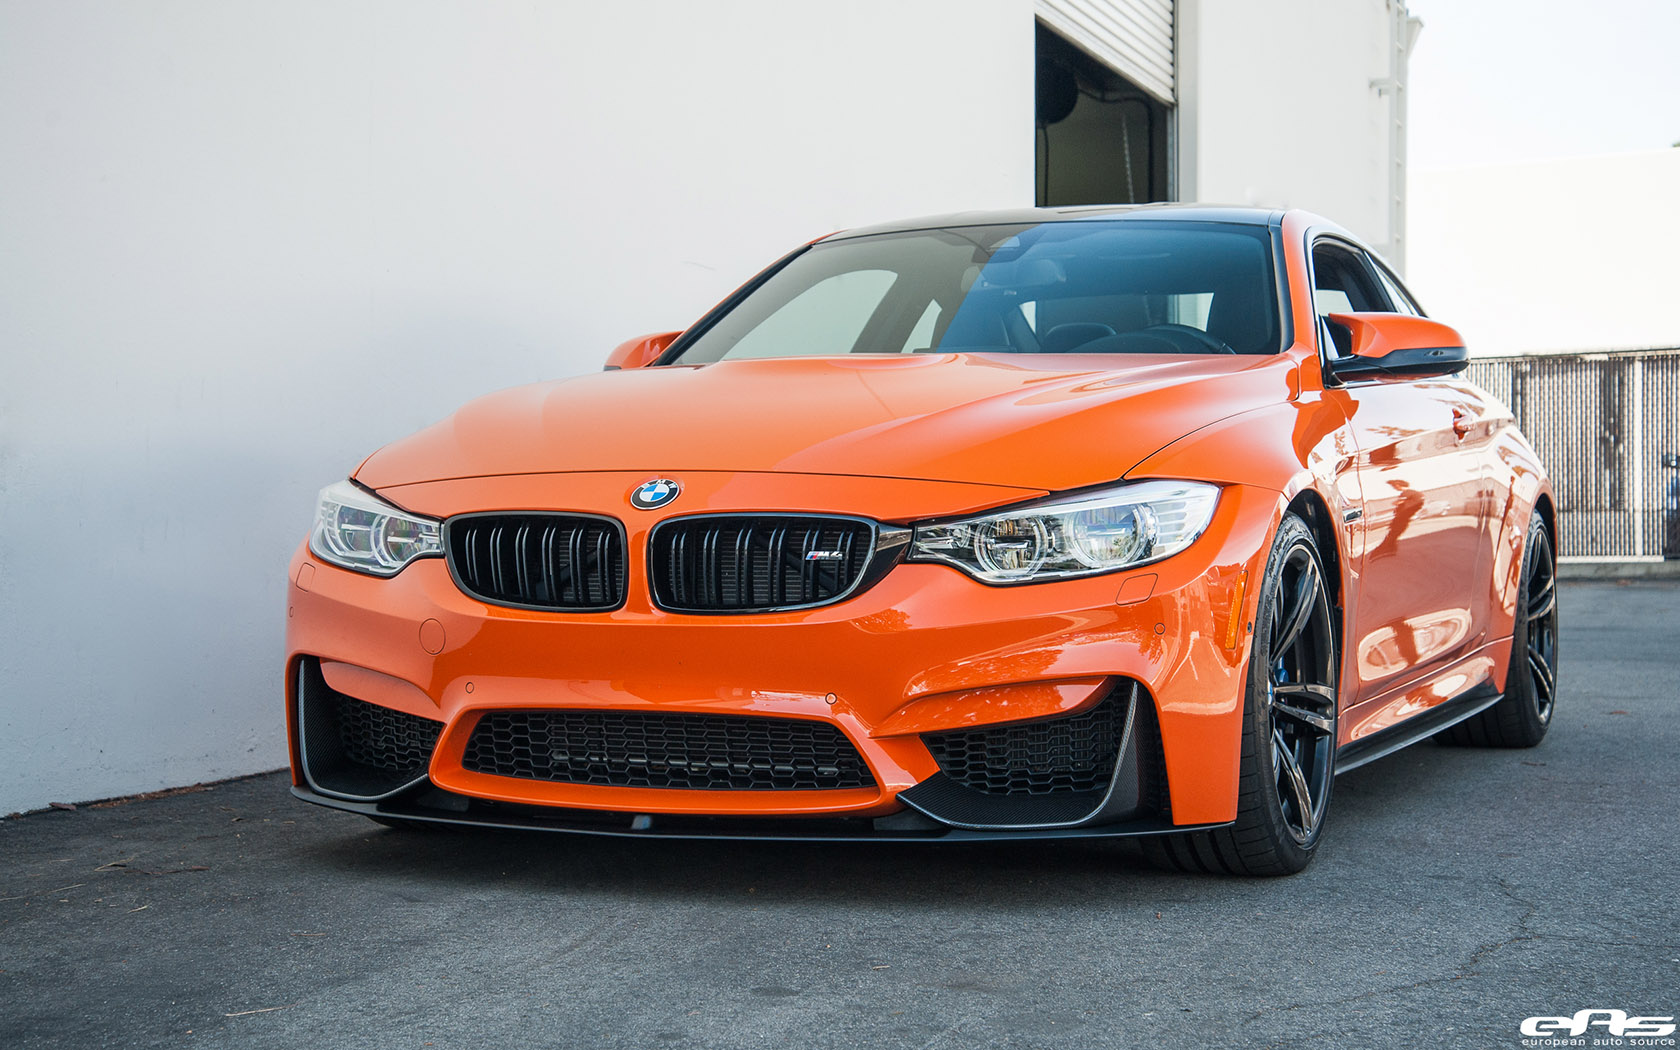 bmw m4 orange fire f82 modded ii refined paint gets jobs tuning bmwblog